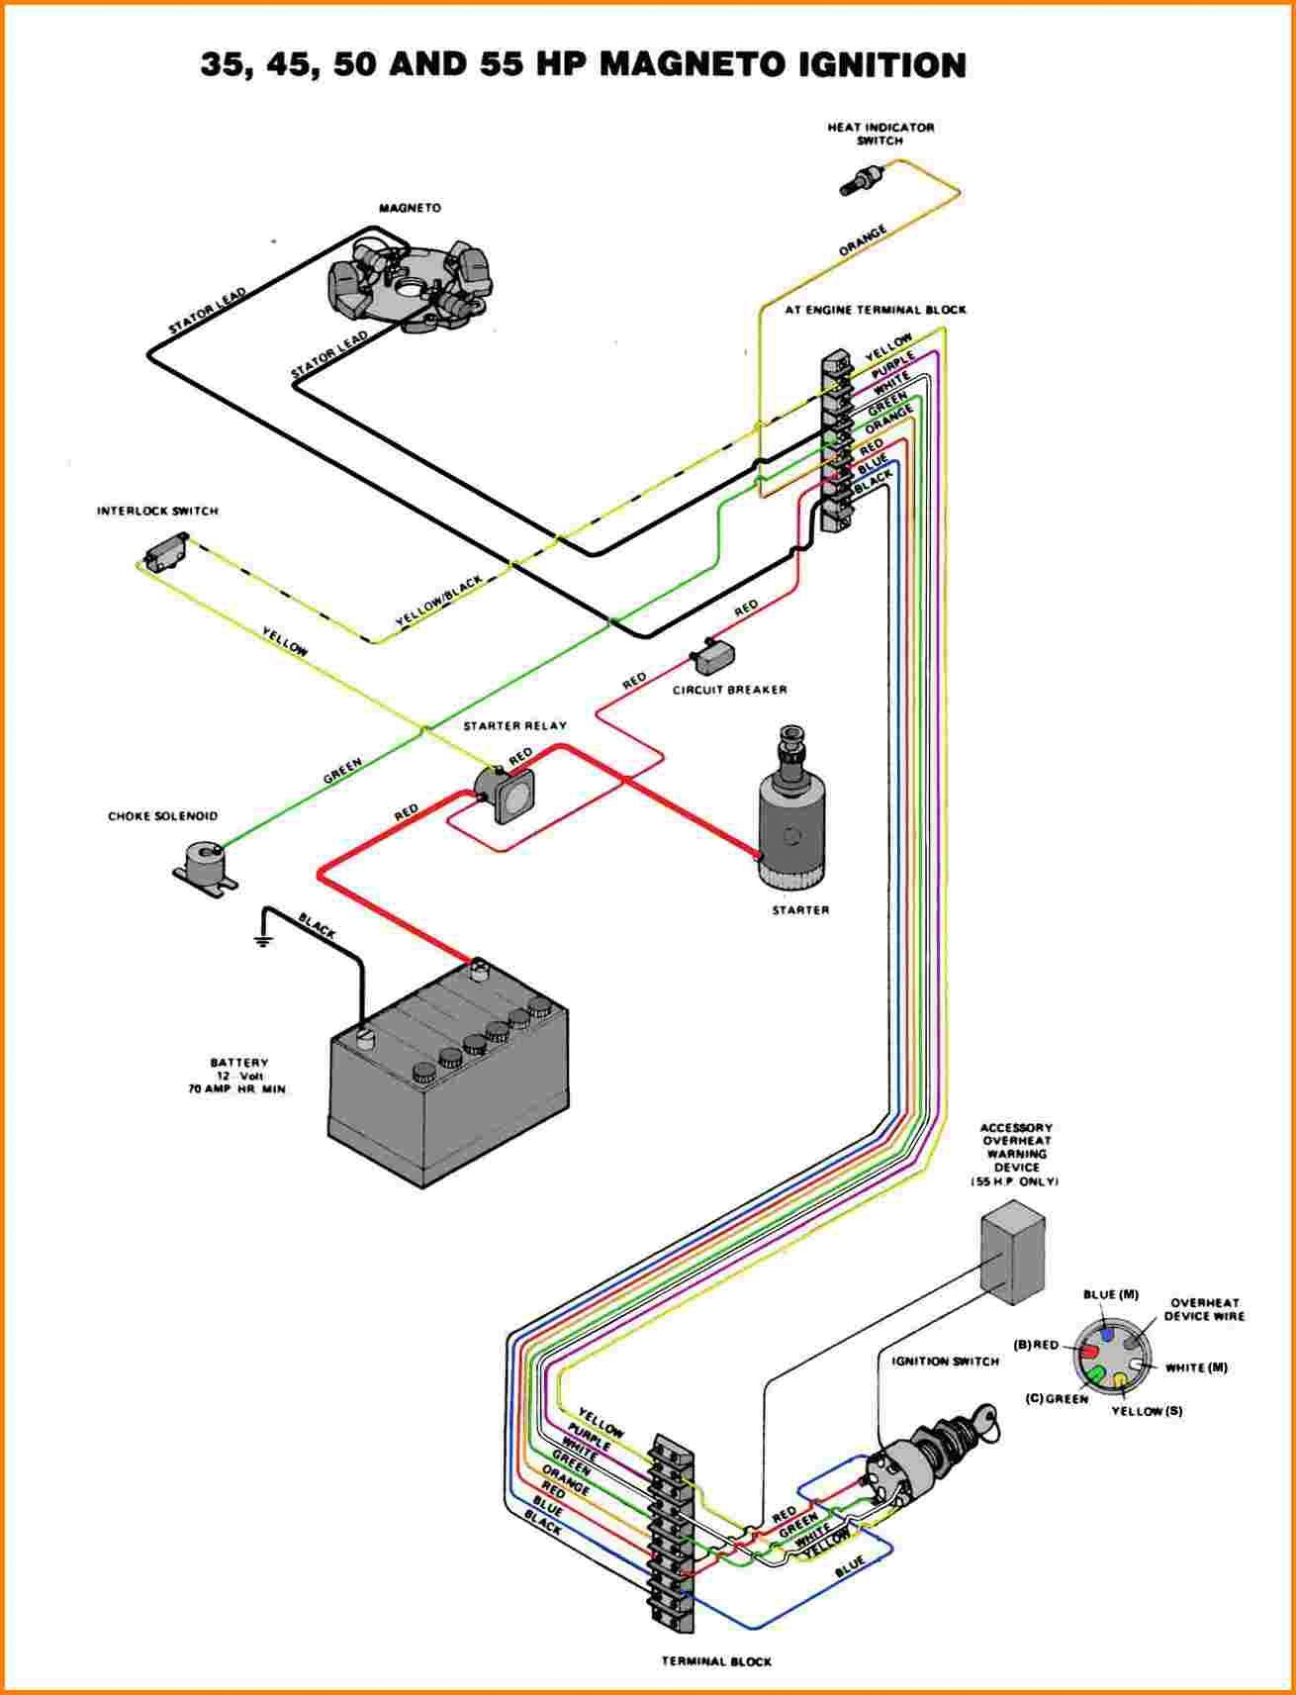 Mercury Outboard Power Trim Wiring Diagram | Air American Samoa - Mercury Outboard Wiring Diagram